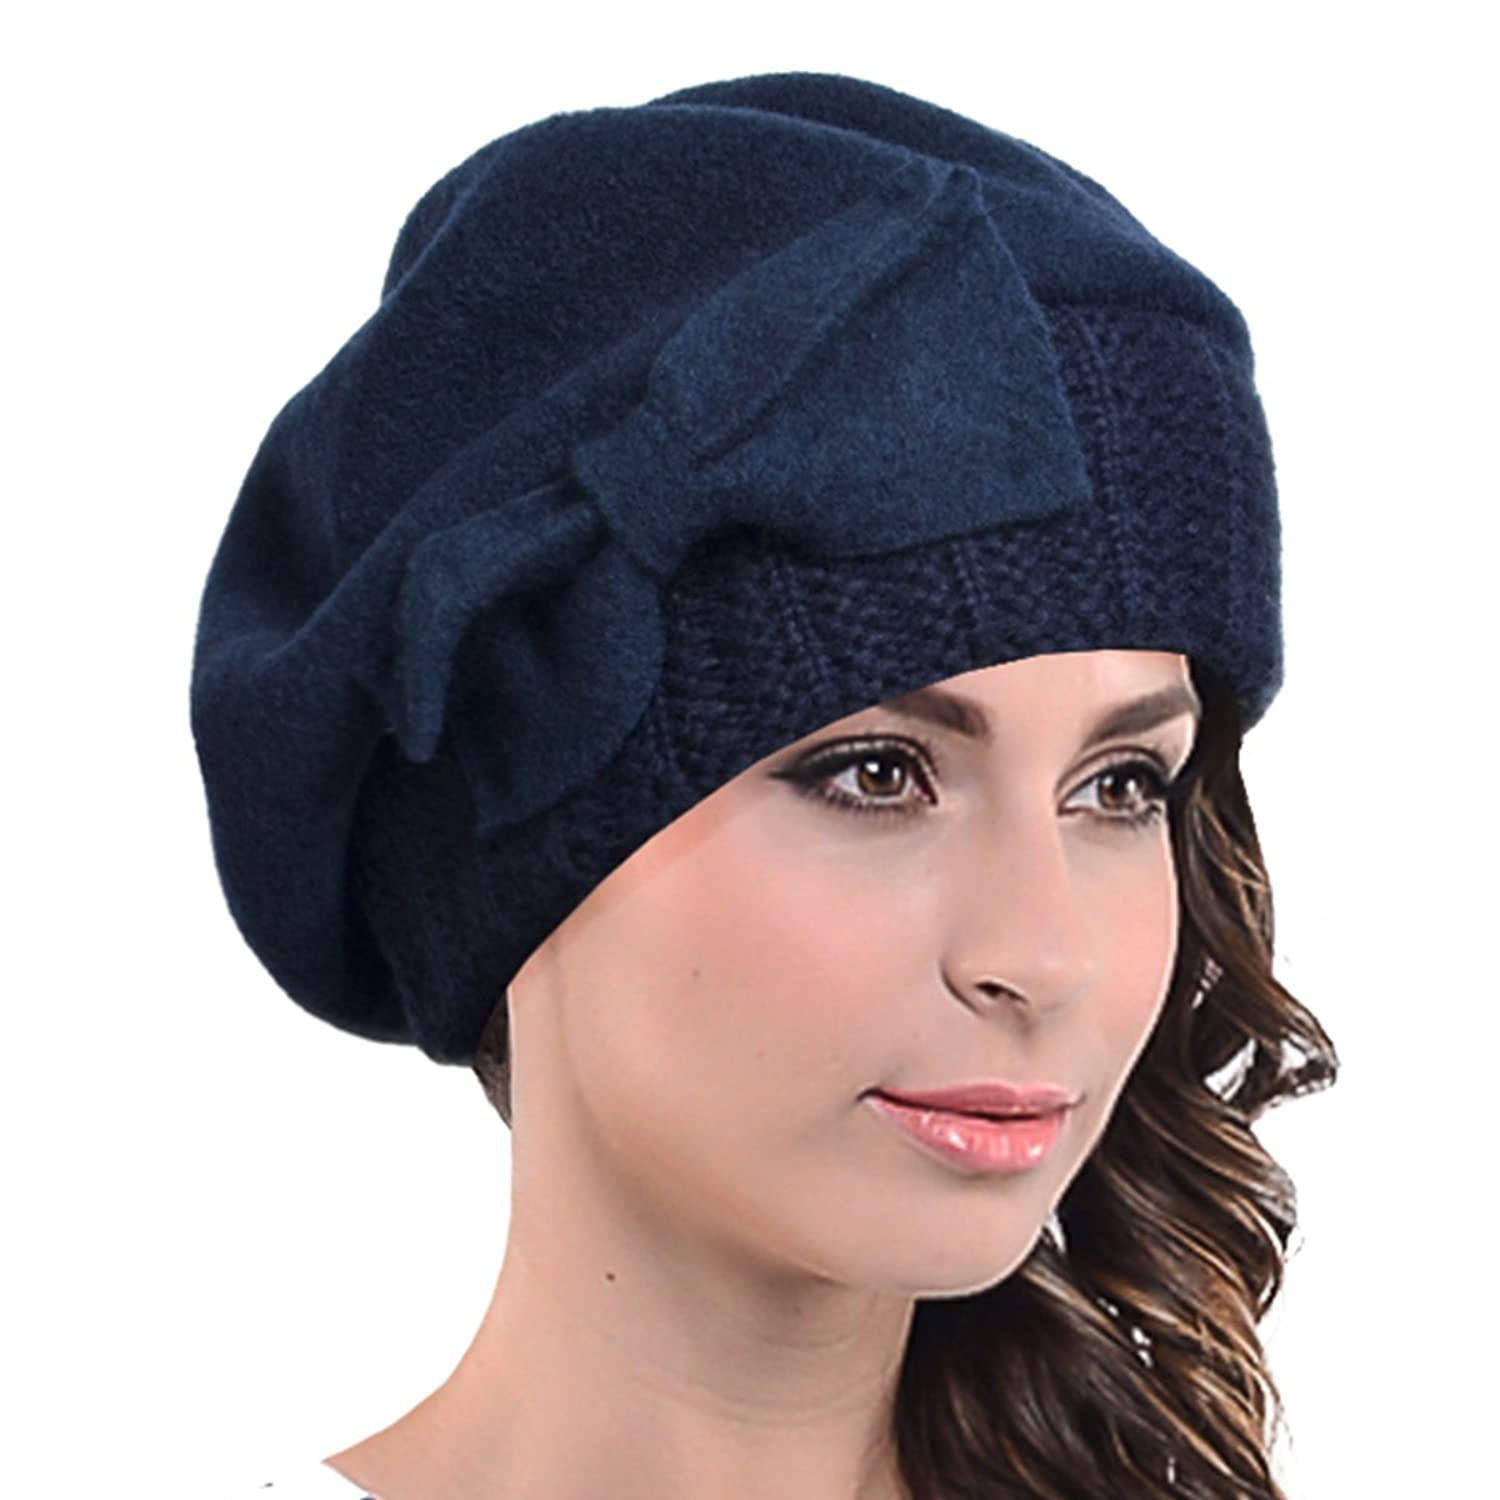 1940s Hats History Lady French Beret Wool Beret Chic Beanie Winter Hat  Jf-br034  21.99 fc8207d5136